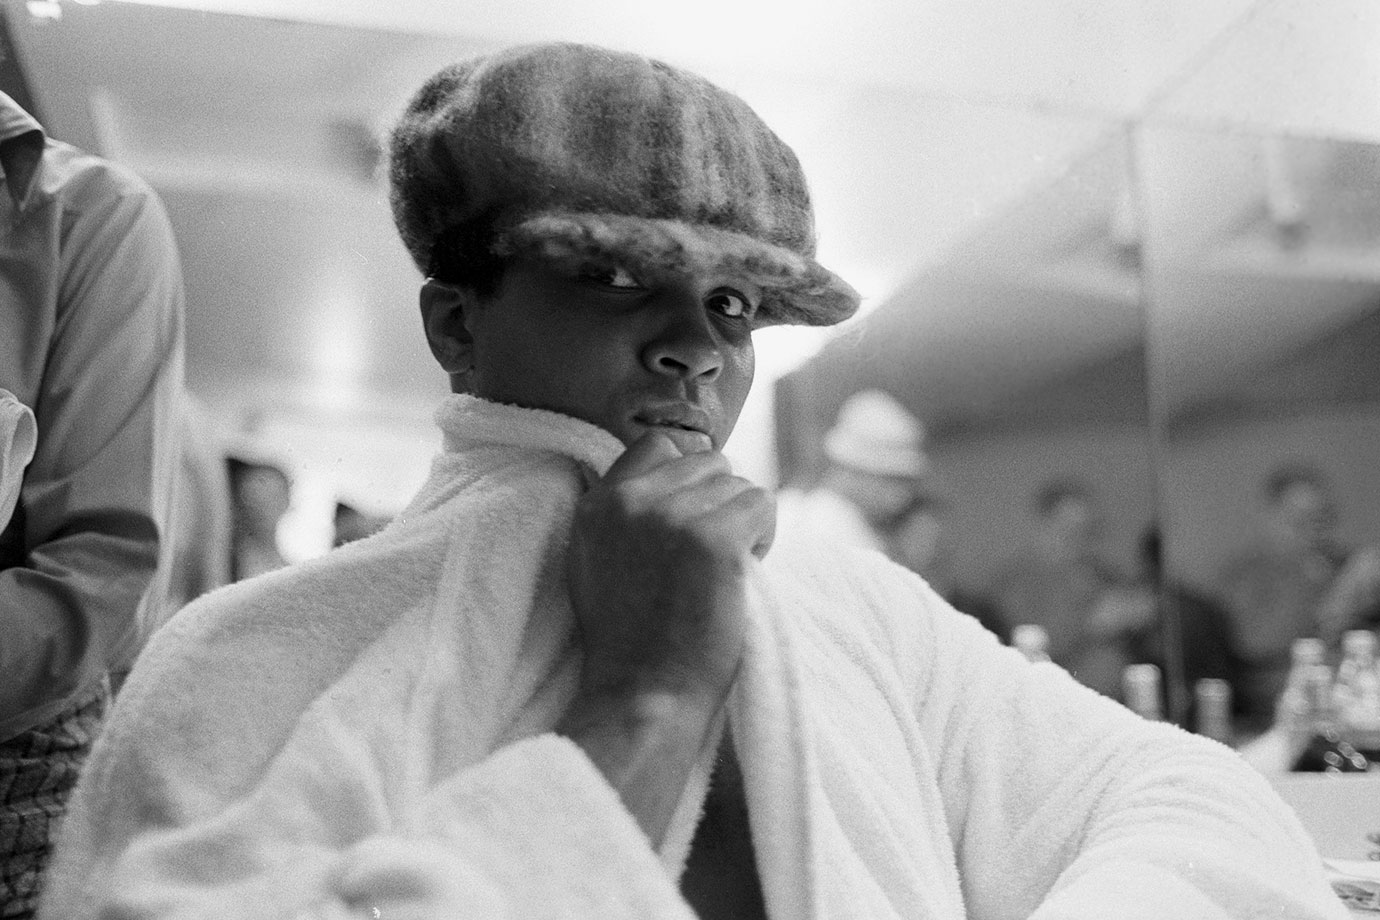 In a lighter pre-fight moment, Ali poses for a portrait wearing a hat in his dressing room before the match with Bugner.